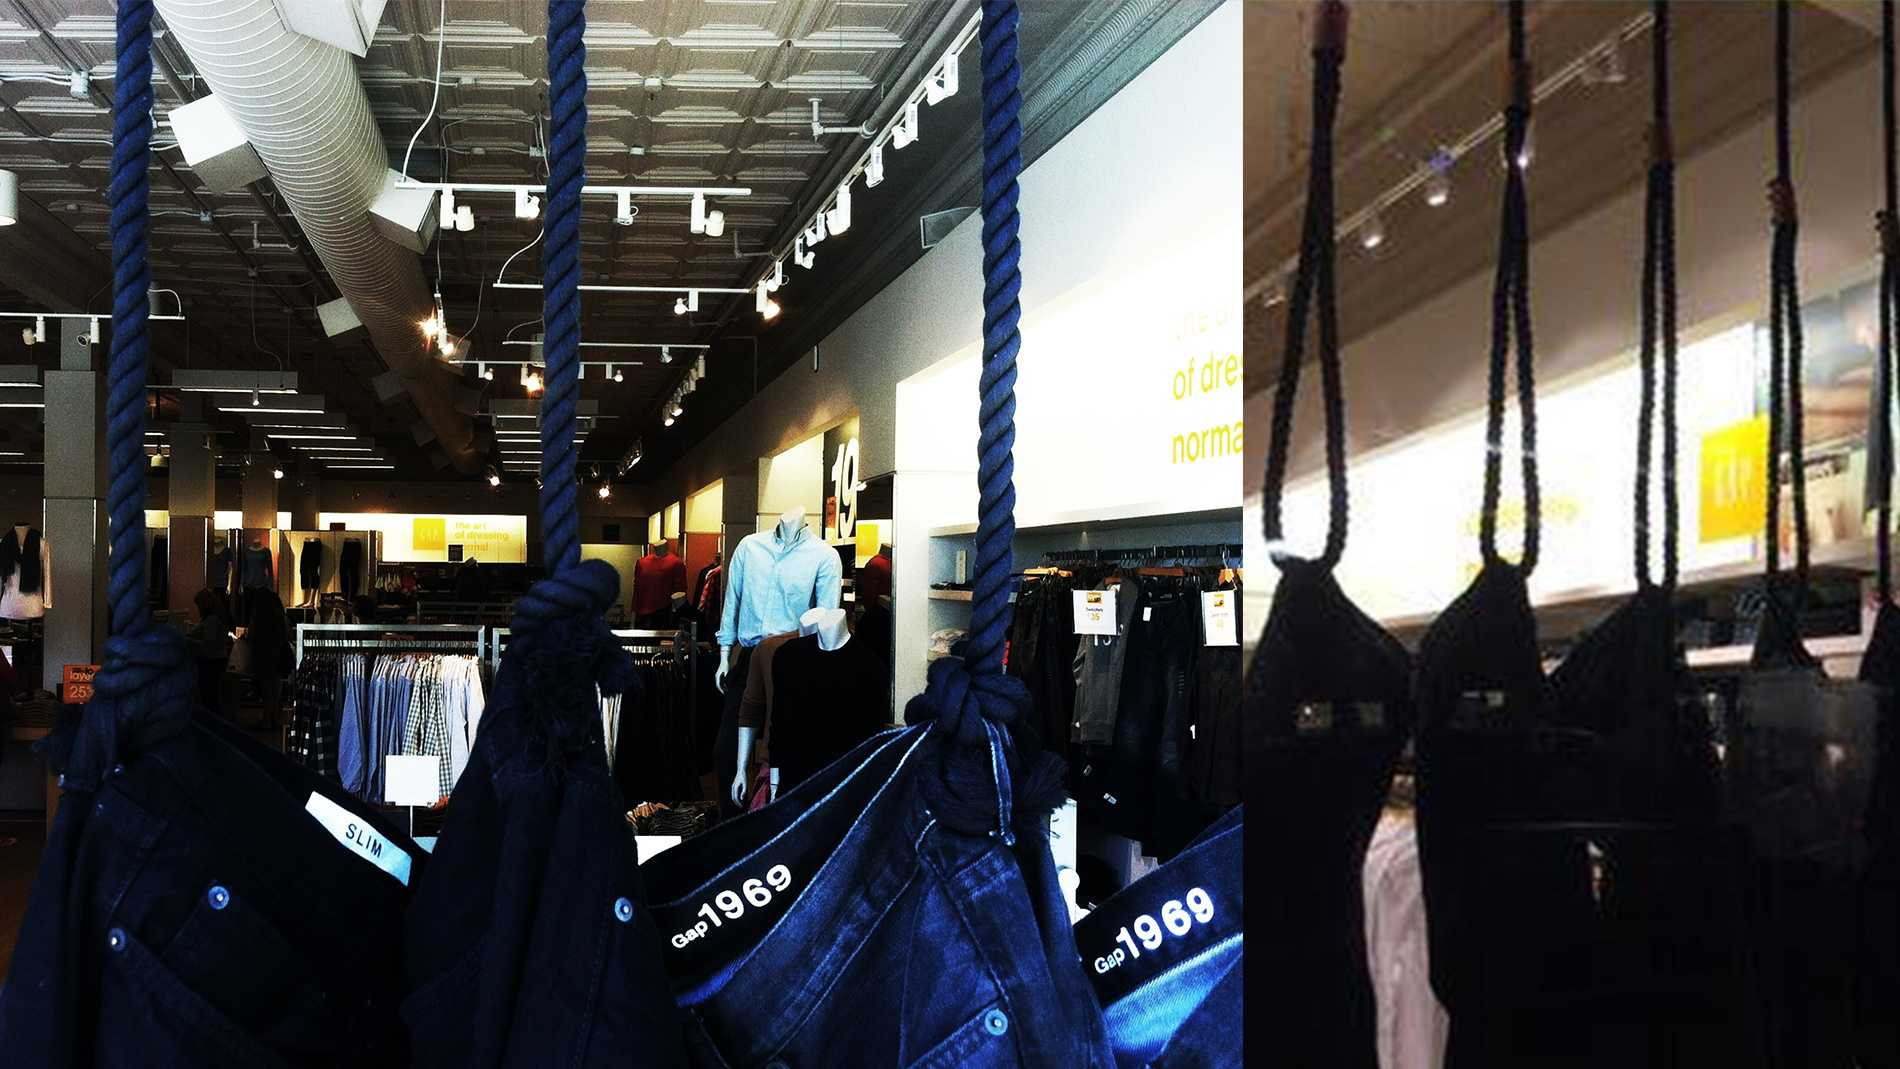 On Wednesday, left, the Gap store in Santa Cruz changed its window display from how it looked on Tuesday, right.